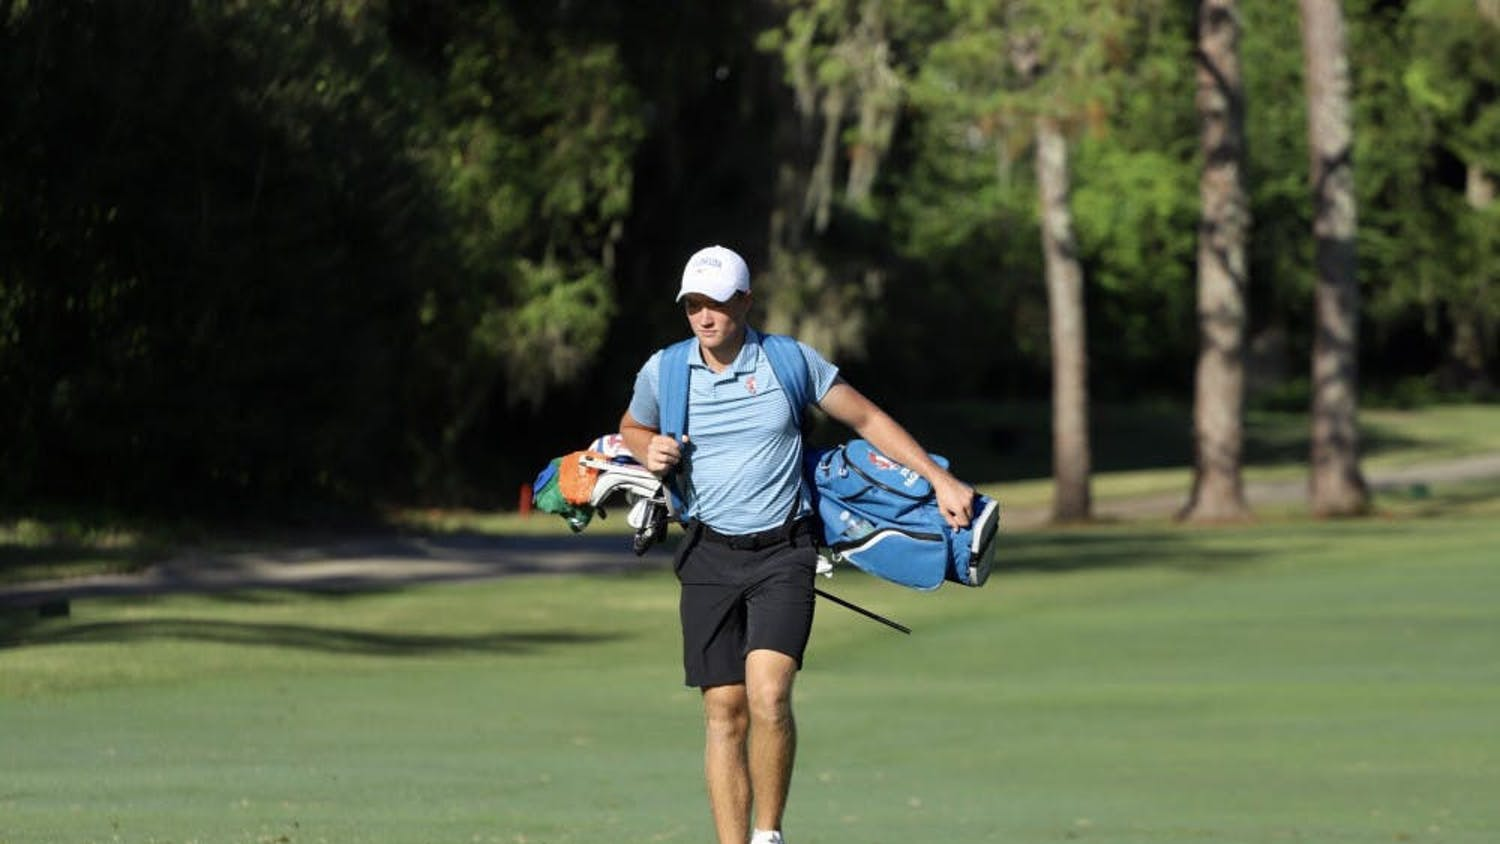 Florida's Joe Pagdin walks the fairways of Mark Bostick Golf Course in Gainesville, Florida. Pagdin shot 79 Saturday as the Gators slipped down to a tie for 22nd in the national championship.